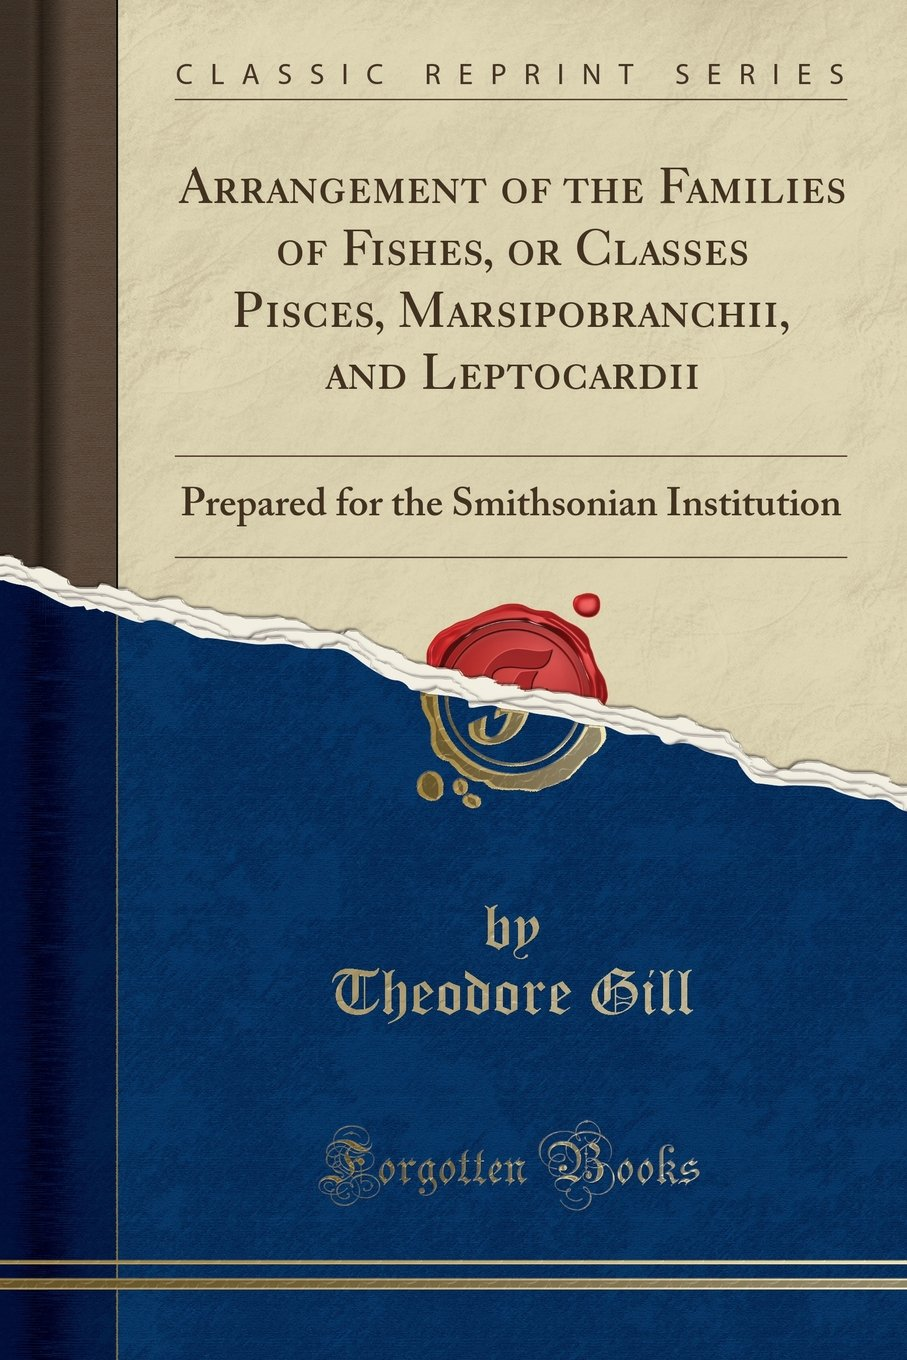 Arrangement of the Families of Fishes, or Classes Pisces, Marsipobranchii, and Leptocardii: Prepared for the Smithsonian Institution (Classic Reprint) pdf